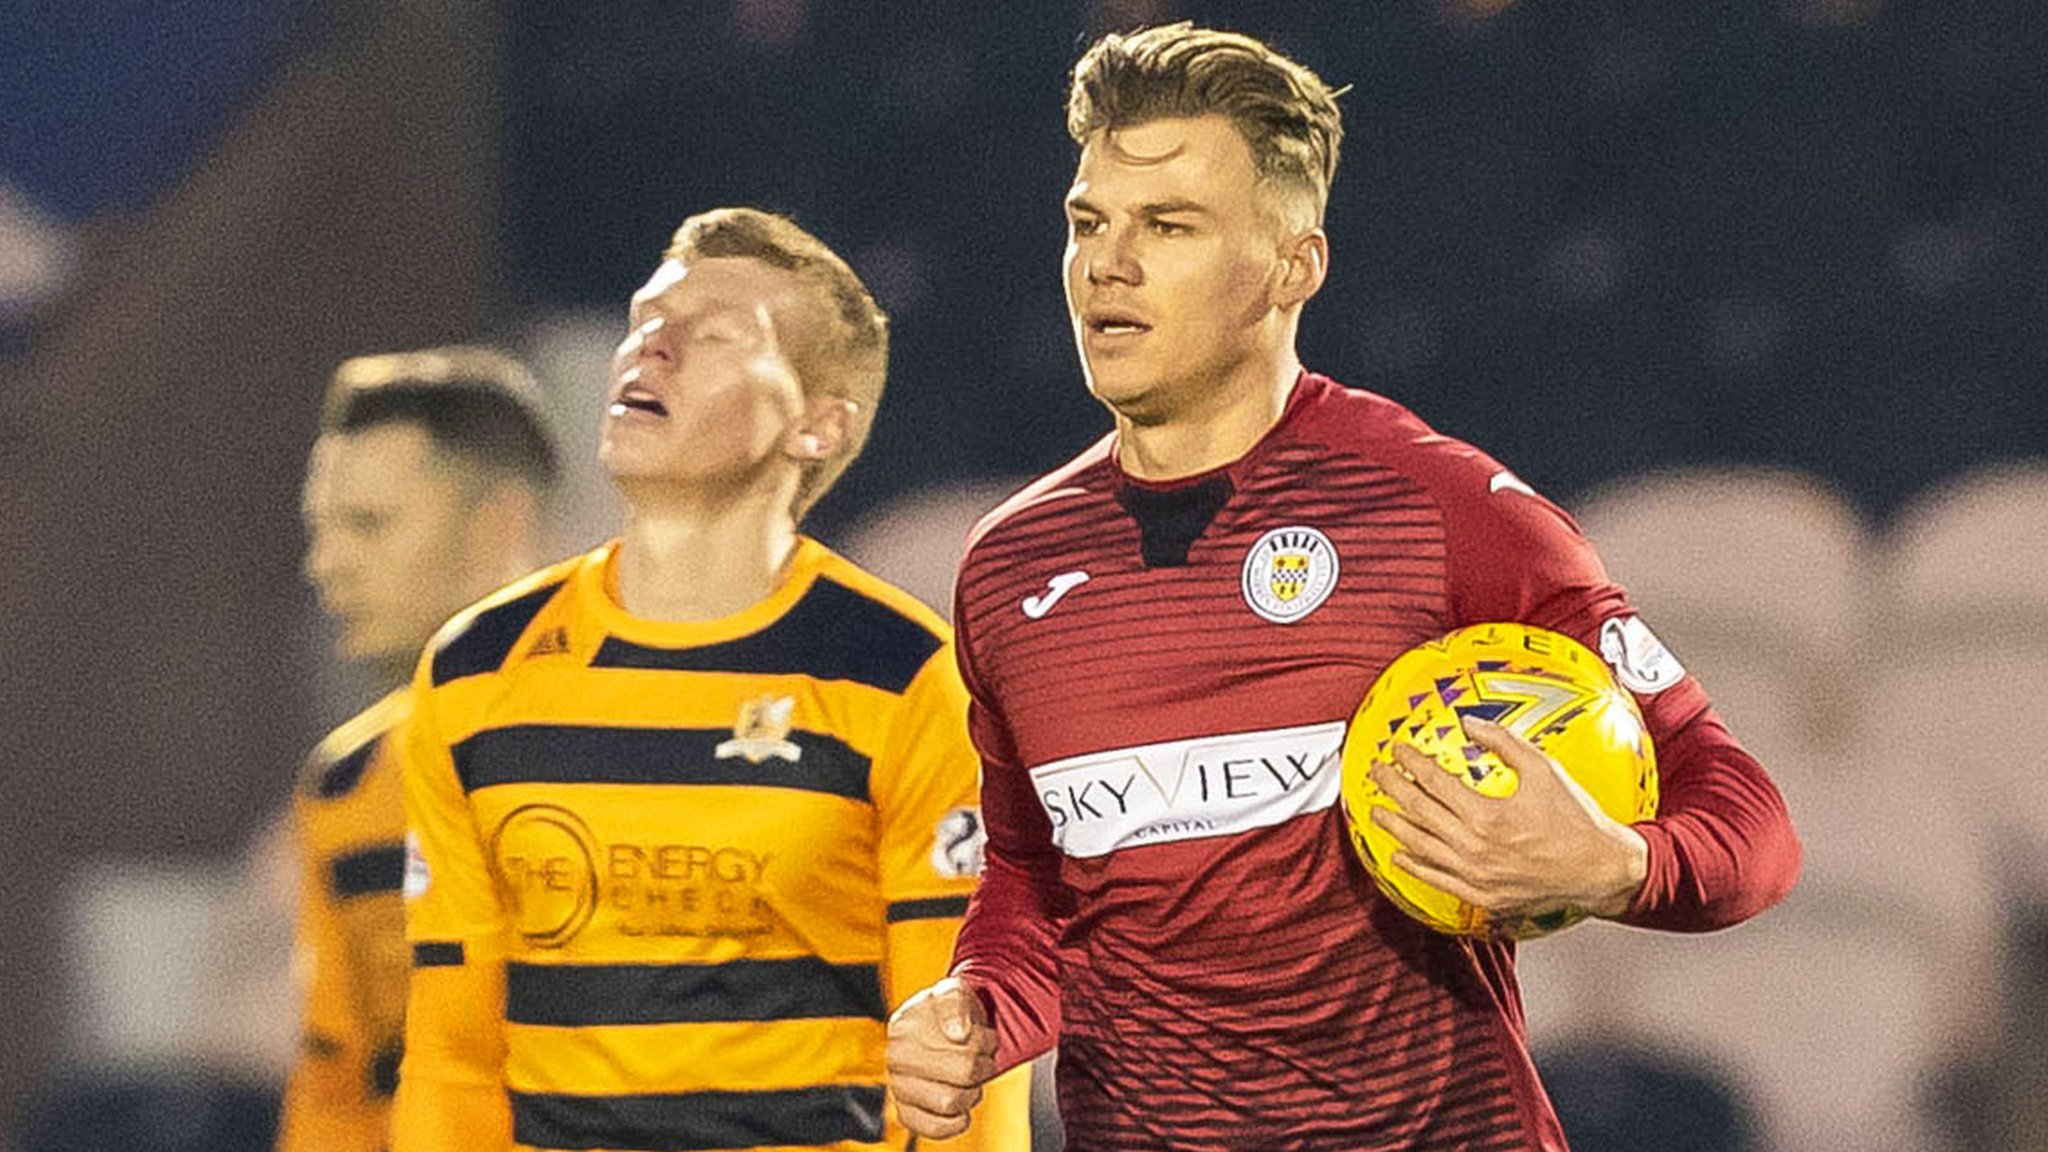 St Mirren 3-2 Alloa: Premiership strugglers hit back with late salvo to deny Athletic